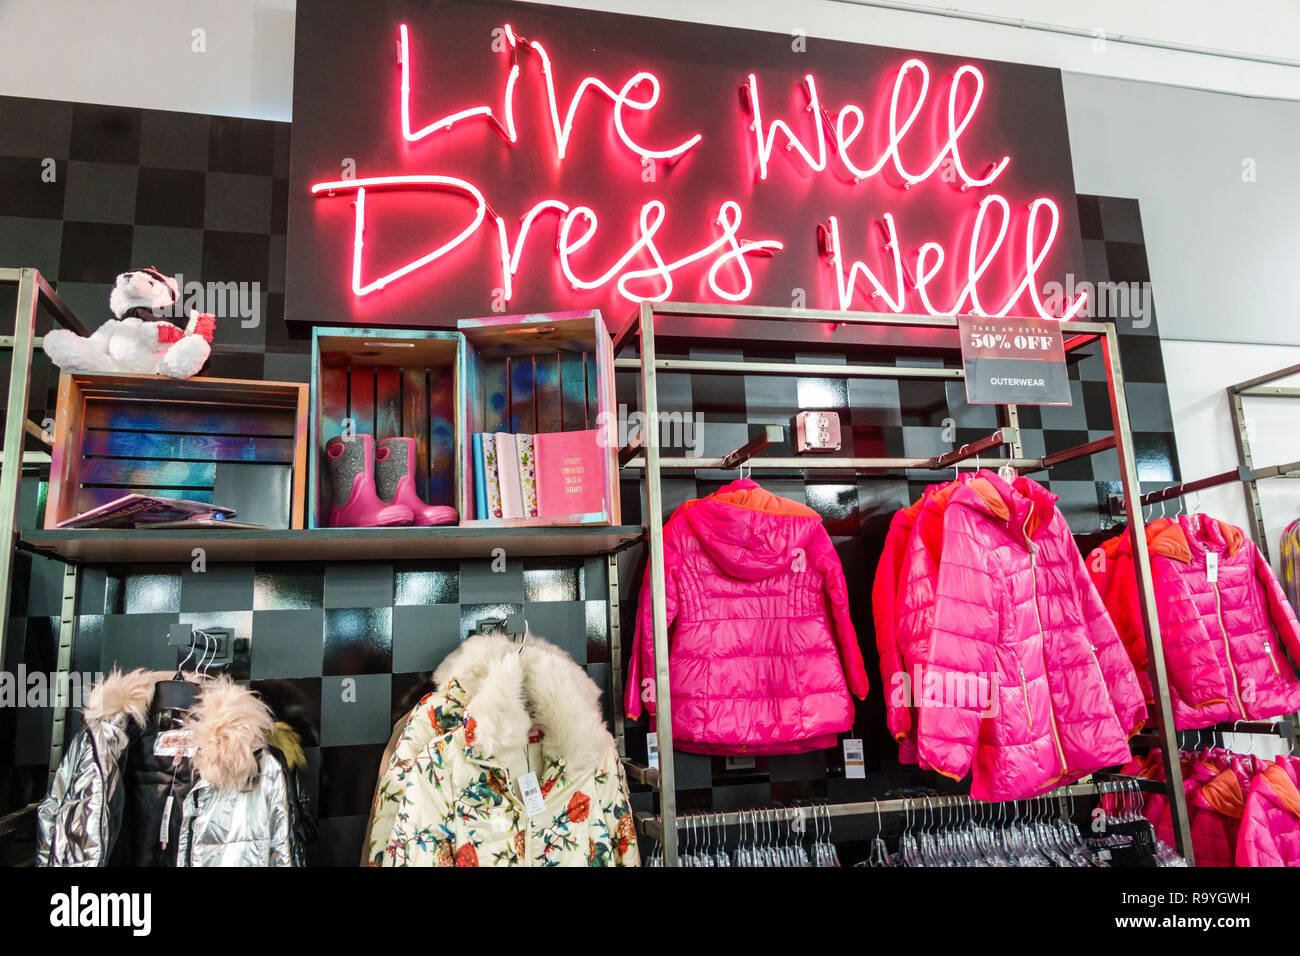 Fort Ft. Lauderdale Florida Sunrise Sawgrass Mills Mall shopping Saks Fifth Avenue Off 5th inside display sale coats clothing neon sign - Stock Image